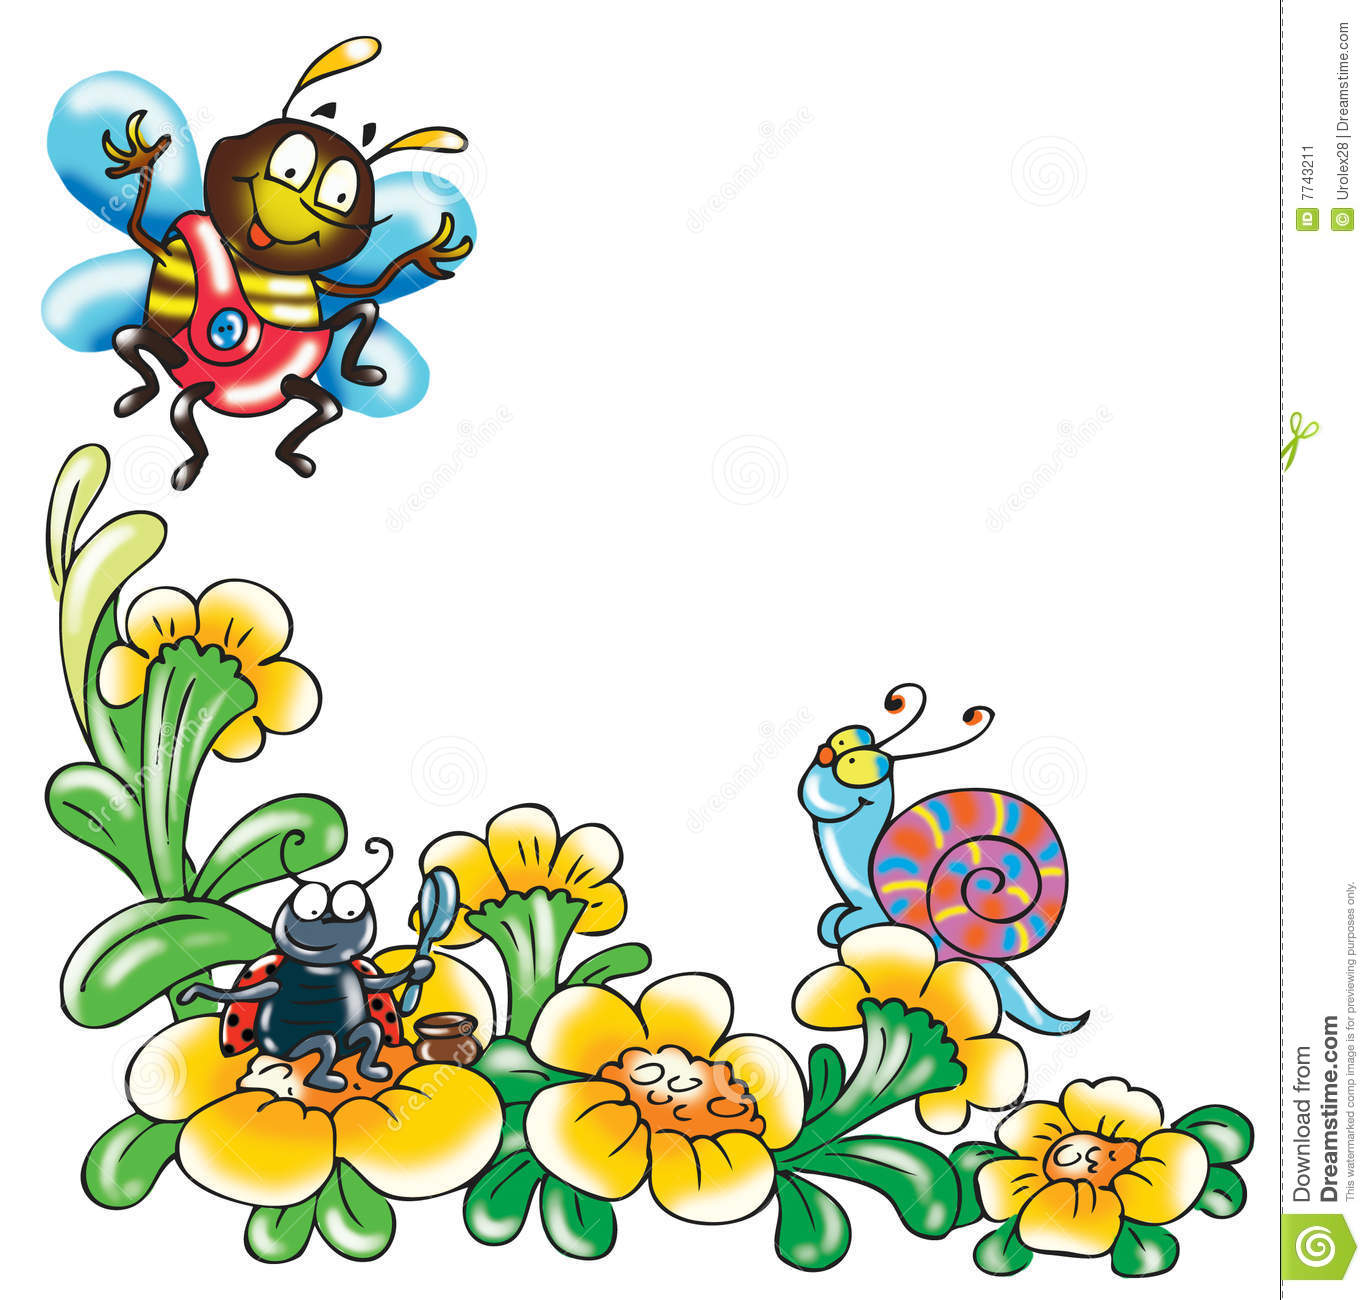 Cartoon of funny insects